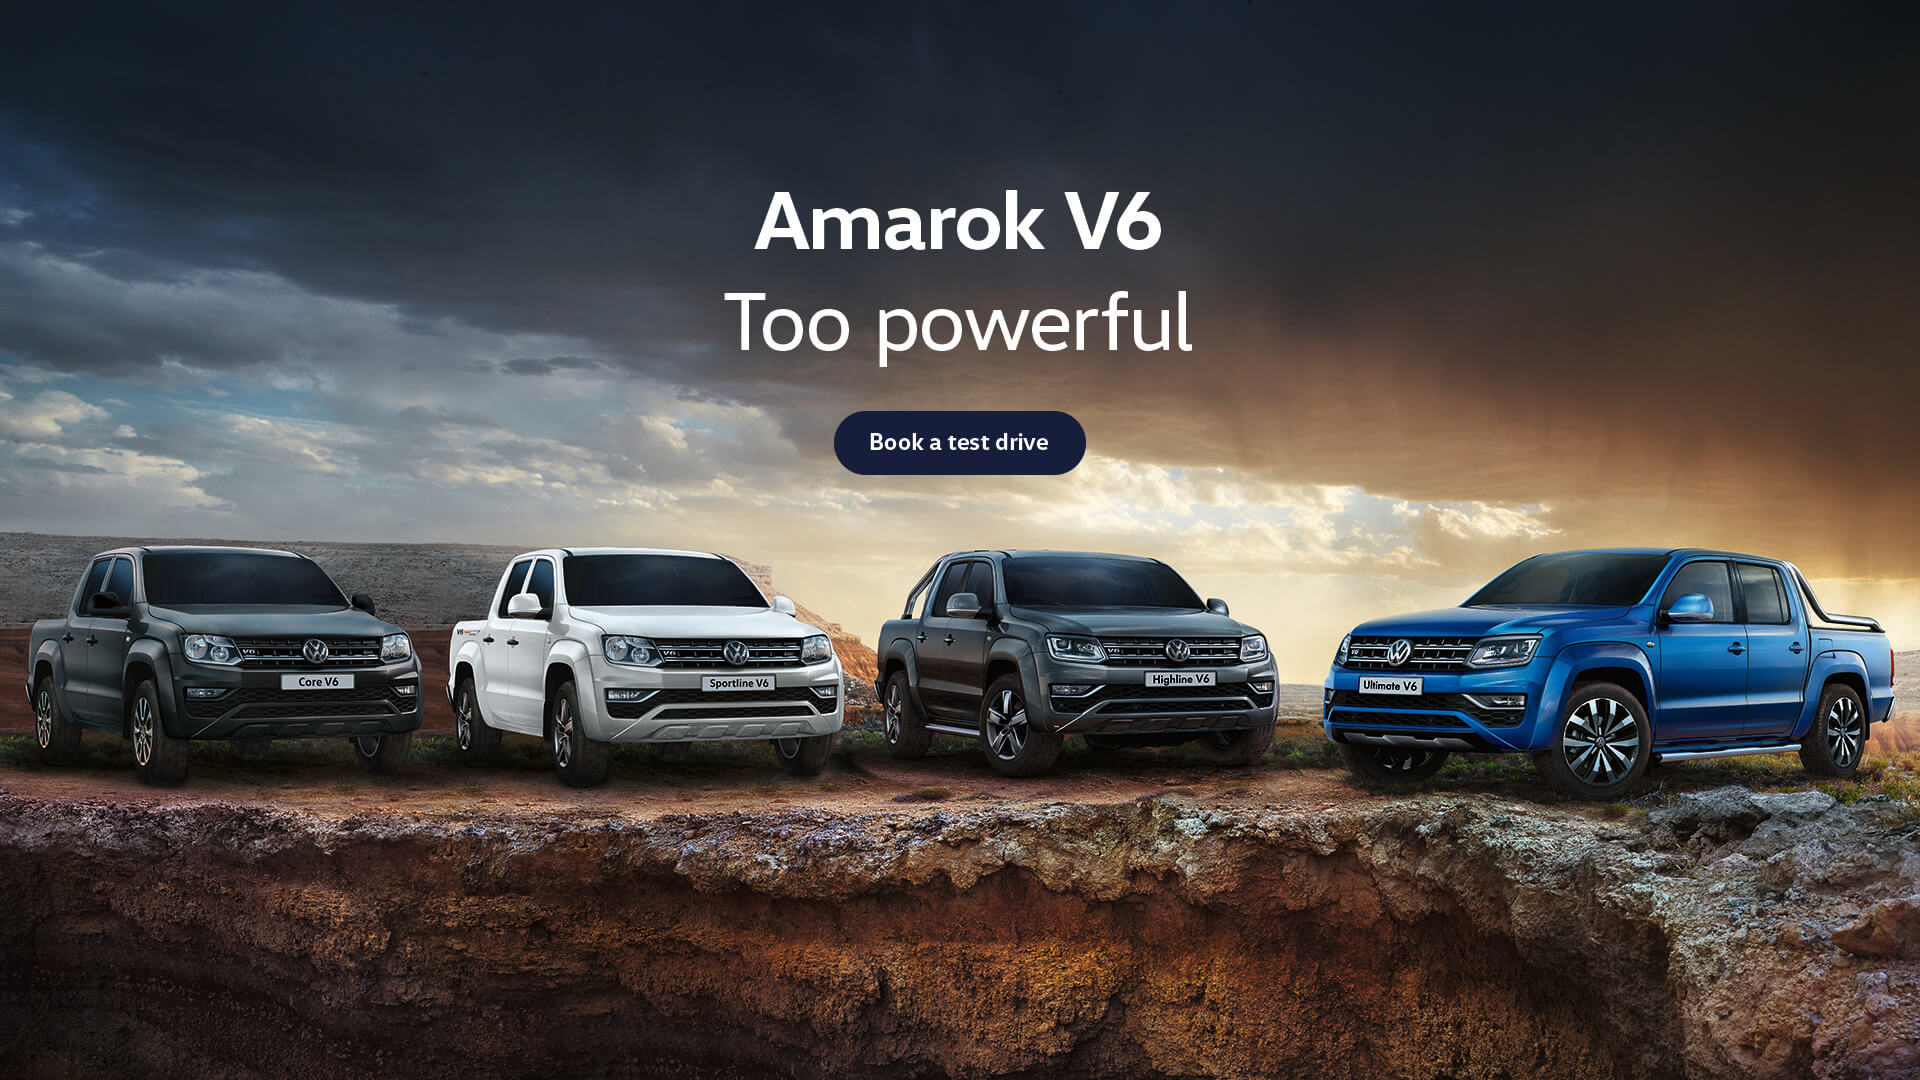 Amarok V6. Too powerful. Test drive today at Shepparton Volkswagen